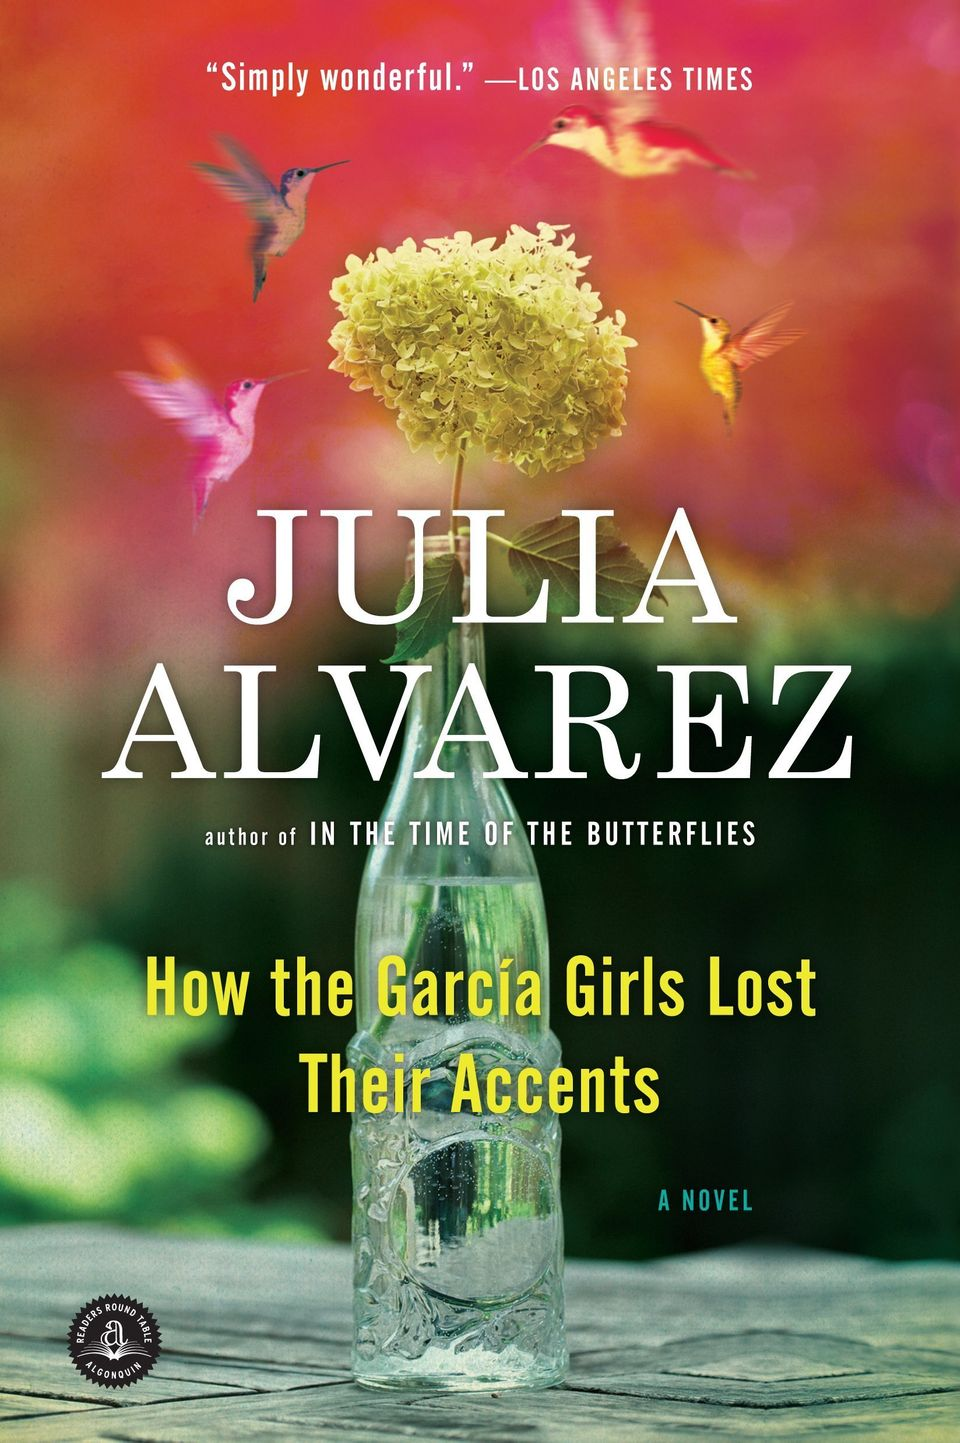 """It's a book just as much about immigration and Latin culture as it is about family conflict and struggle. I found it relatab"